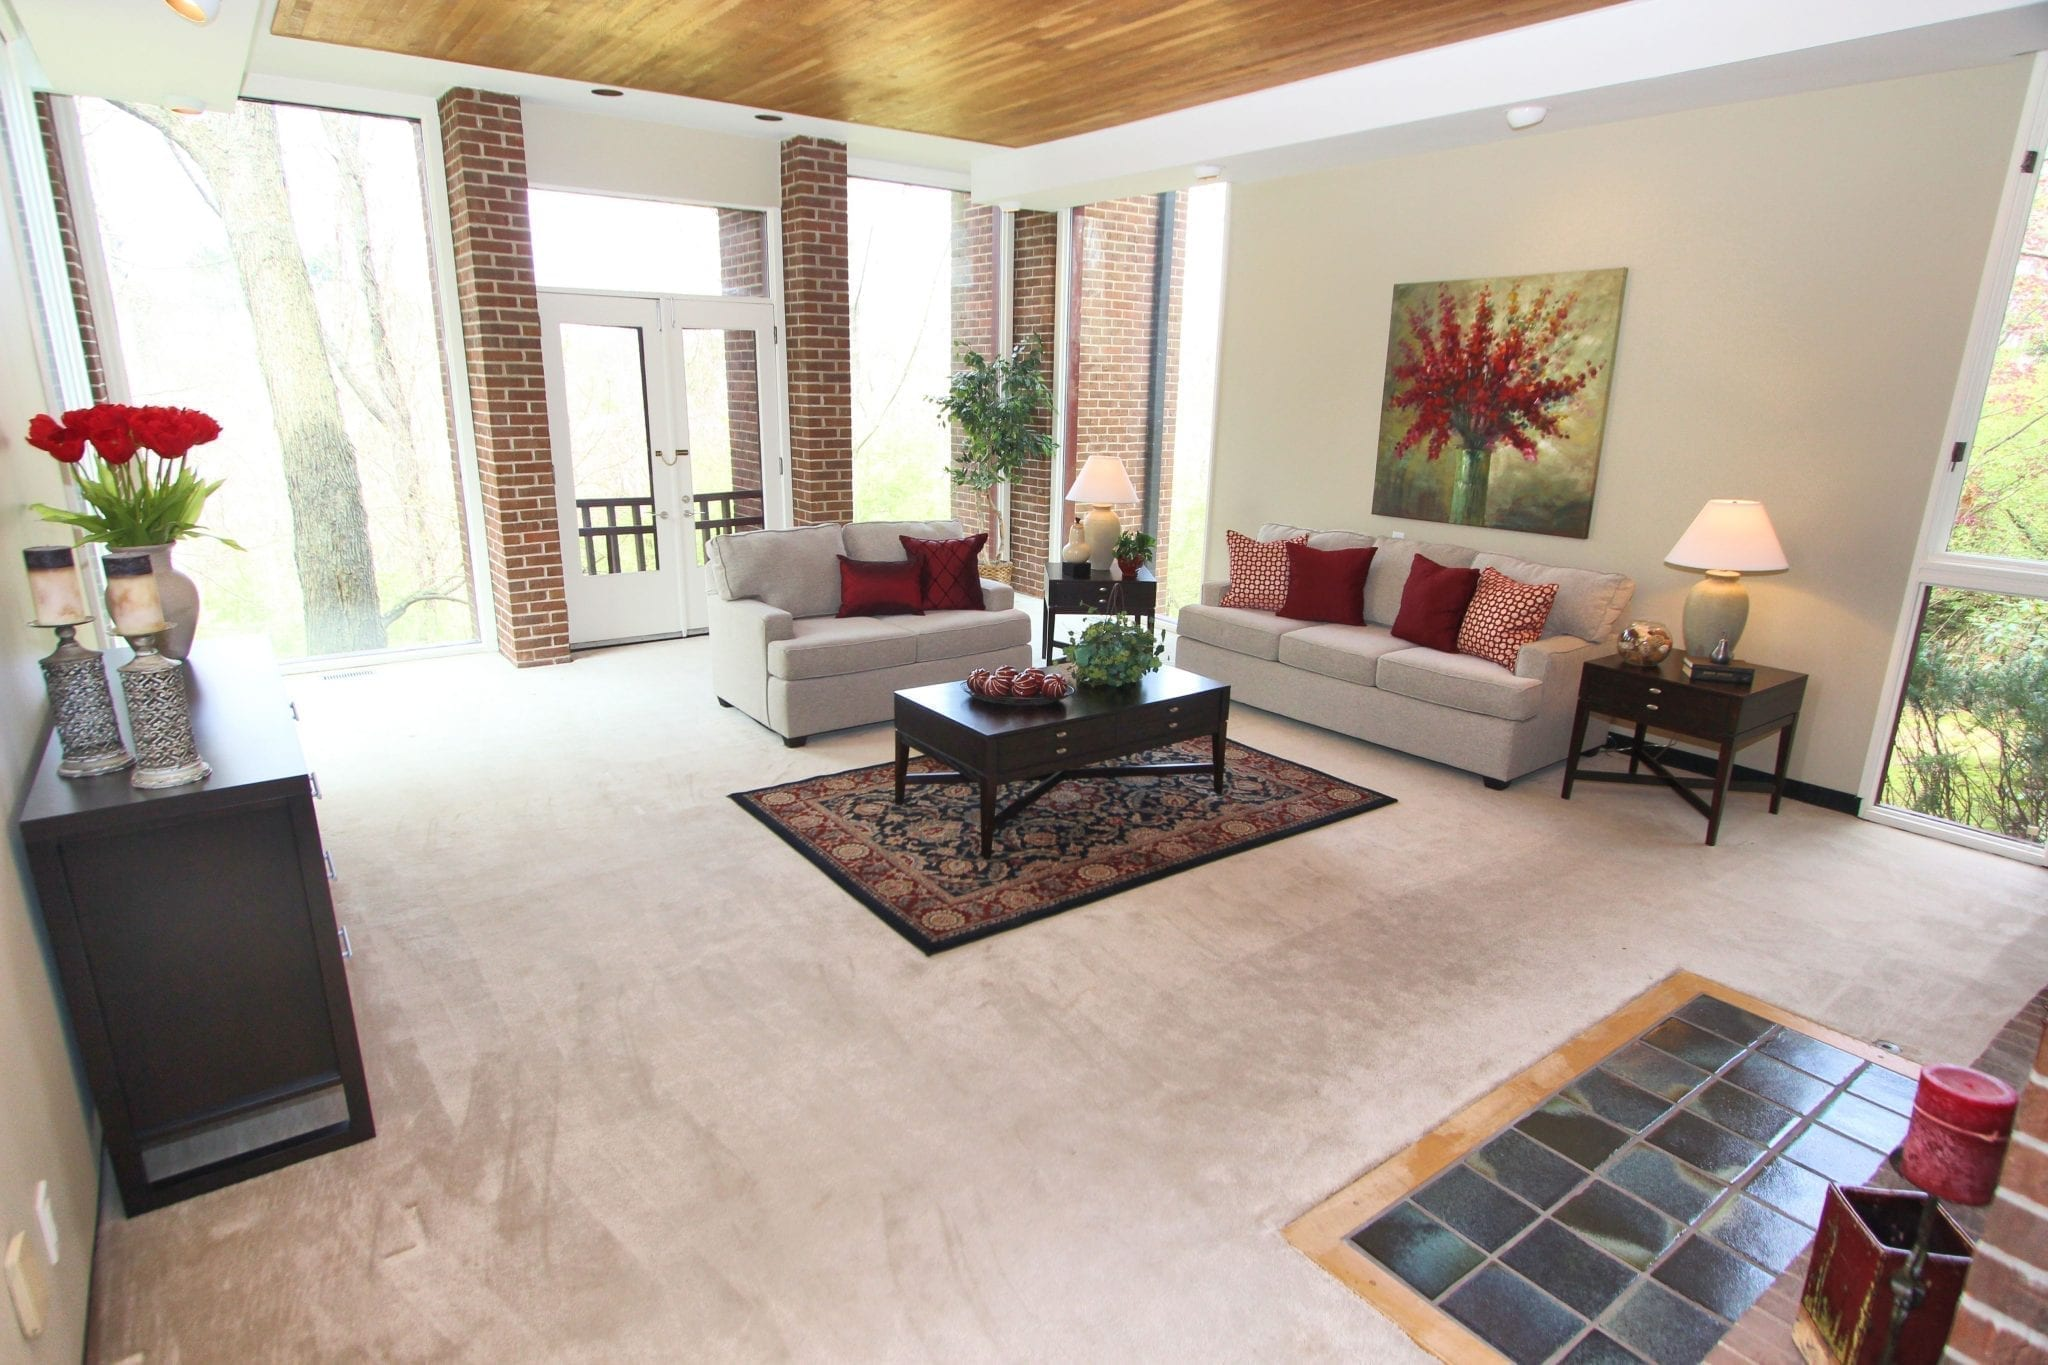 Aquantas Interiors Home Staging Services provided by Pittsburgh Furniture Leasing.